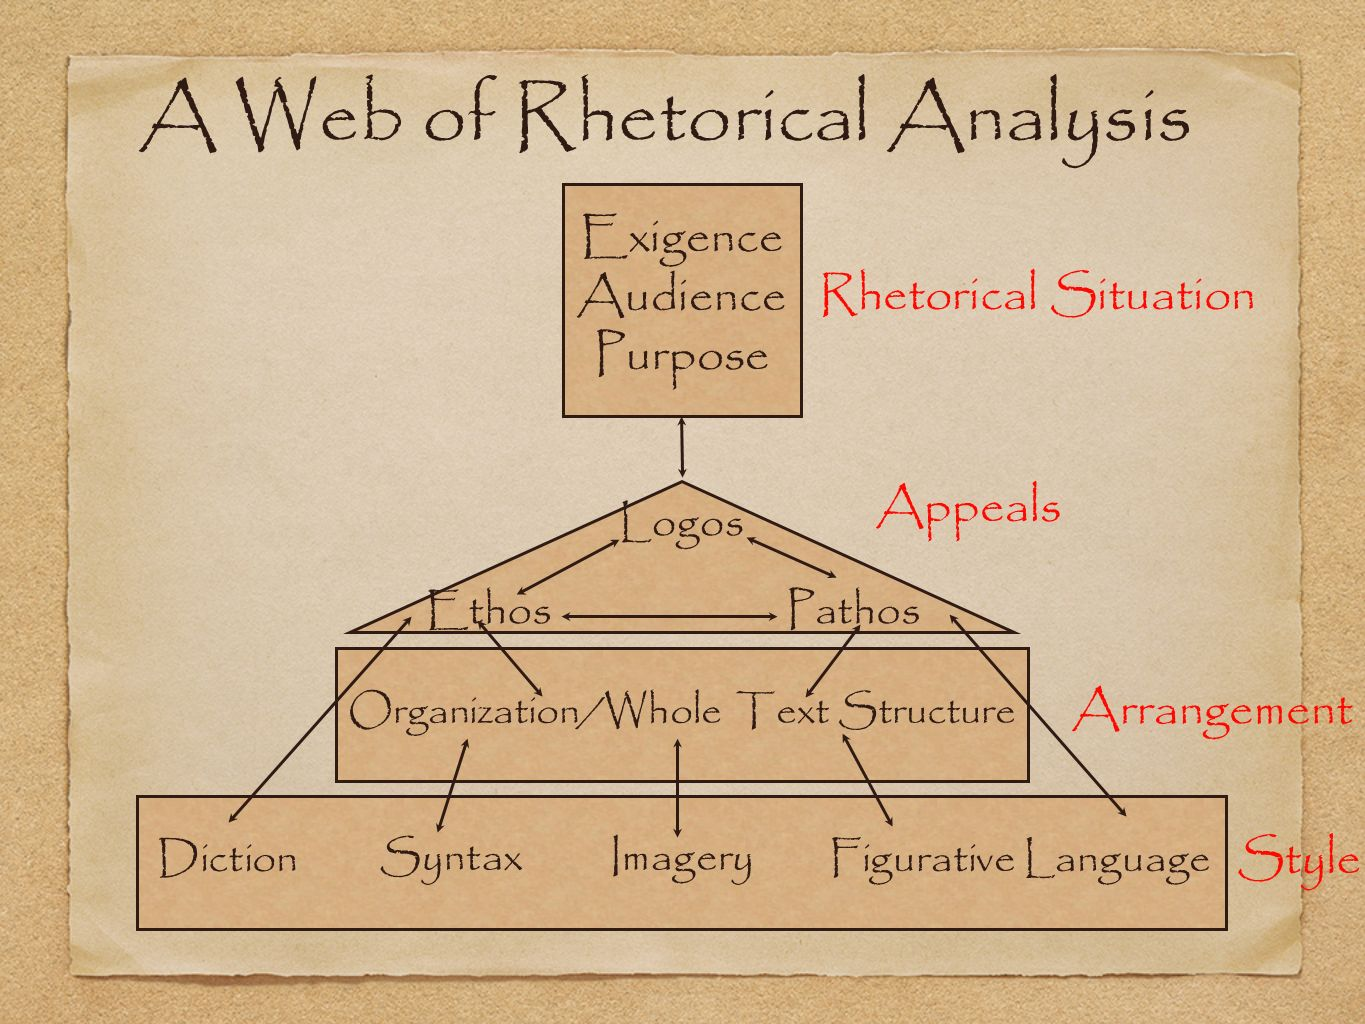 A Web of Rhetorical Analysis Exigence Audience Purpose Logos EthosPathos Organization/Whole Text Structure Diction SyntaxImagery Figurative Language Rhetorical Situation Appeals Arrangement Style